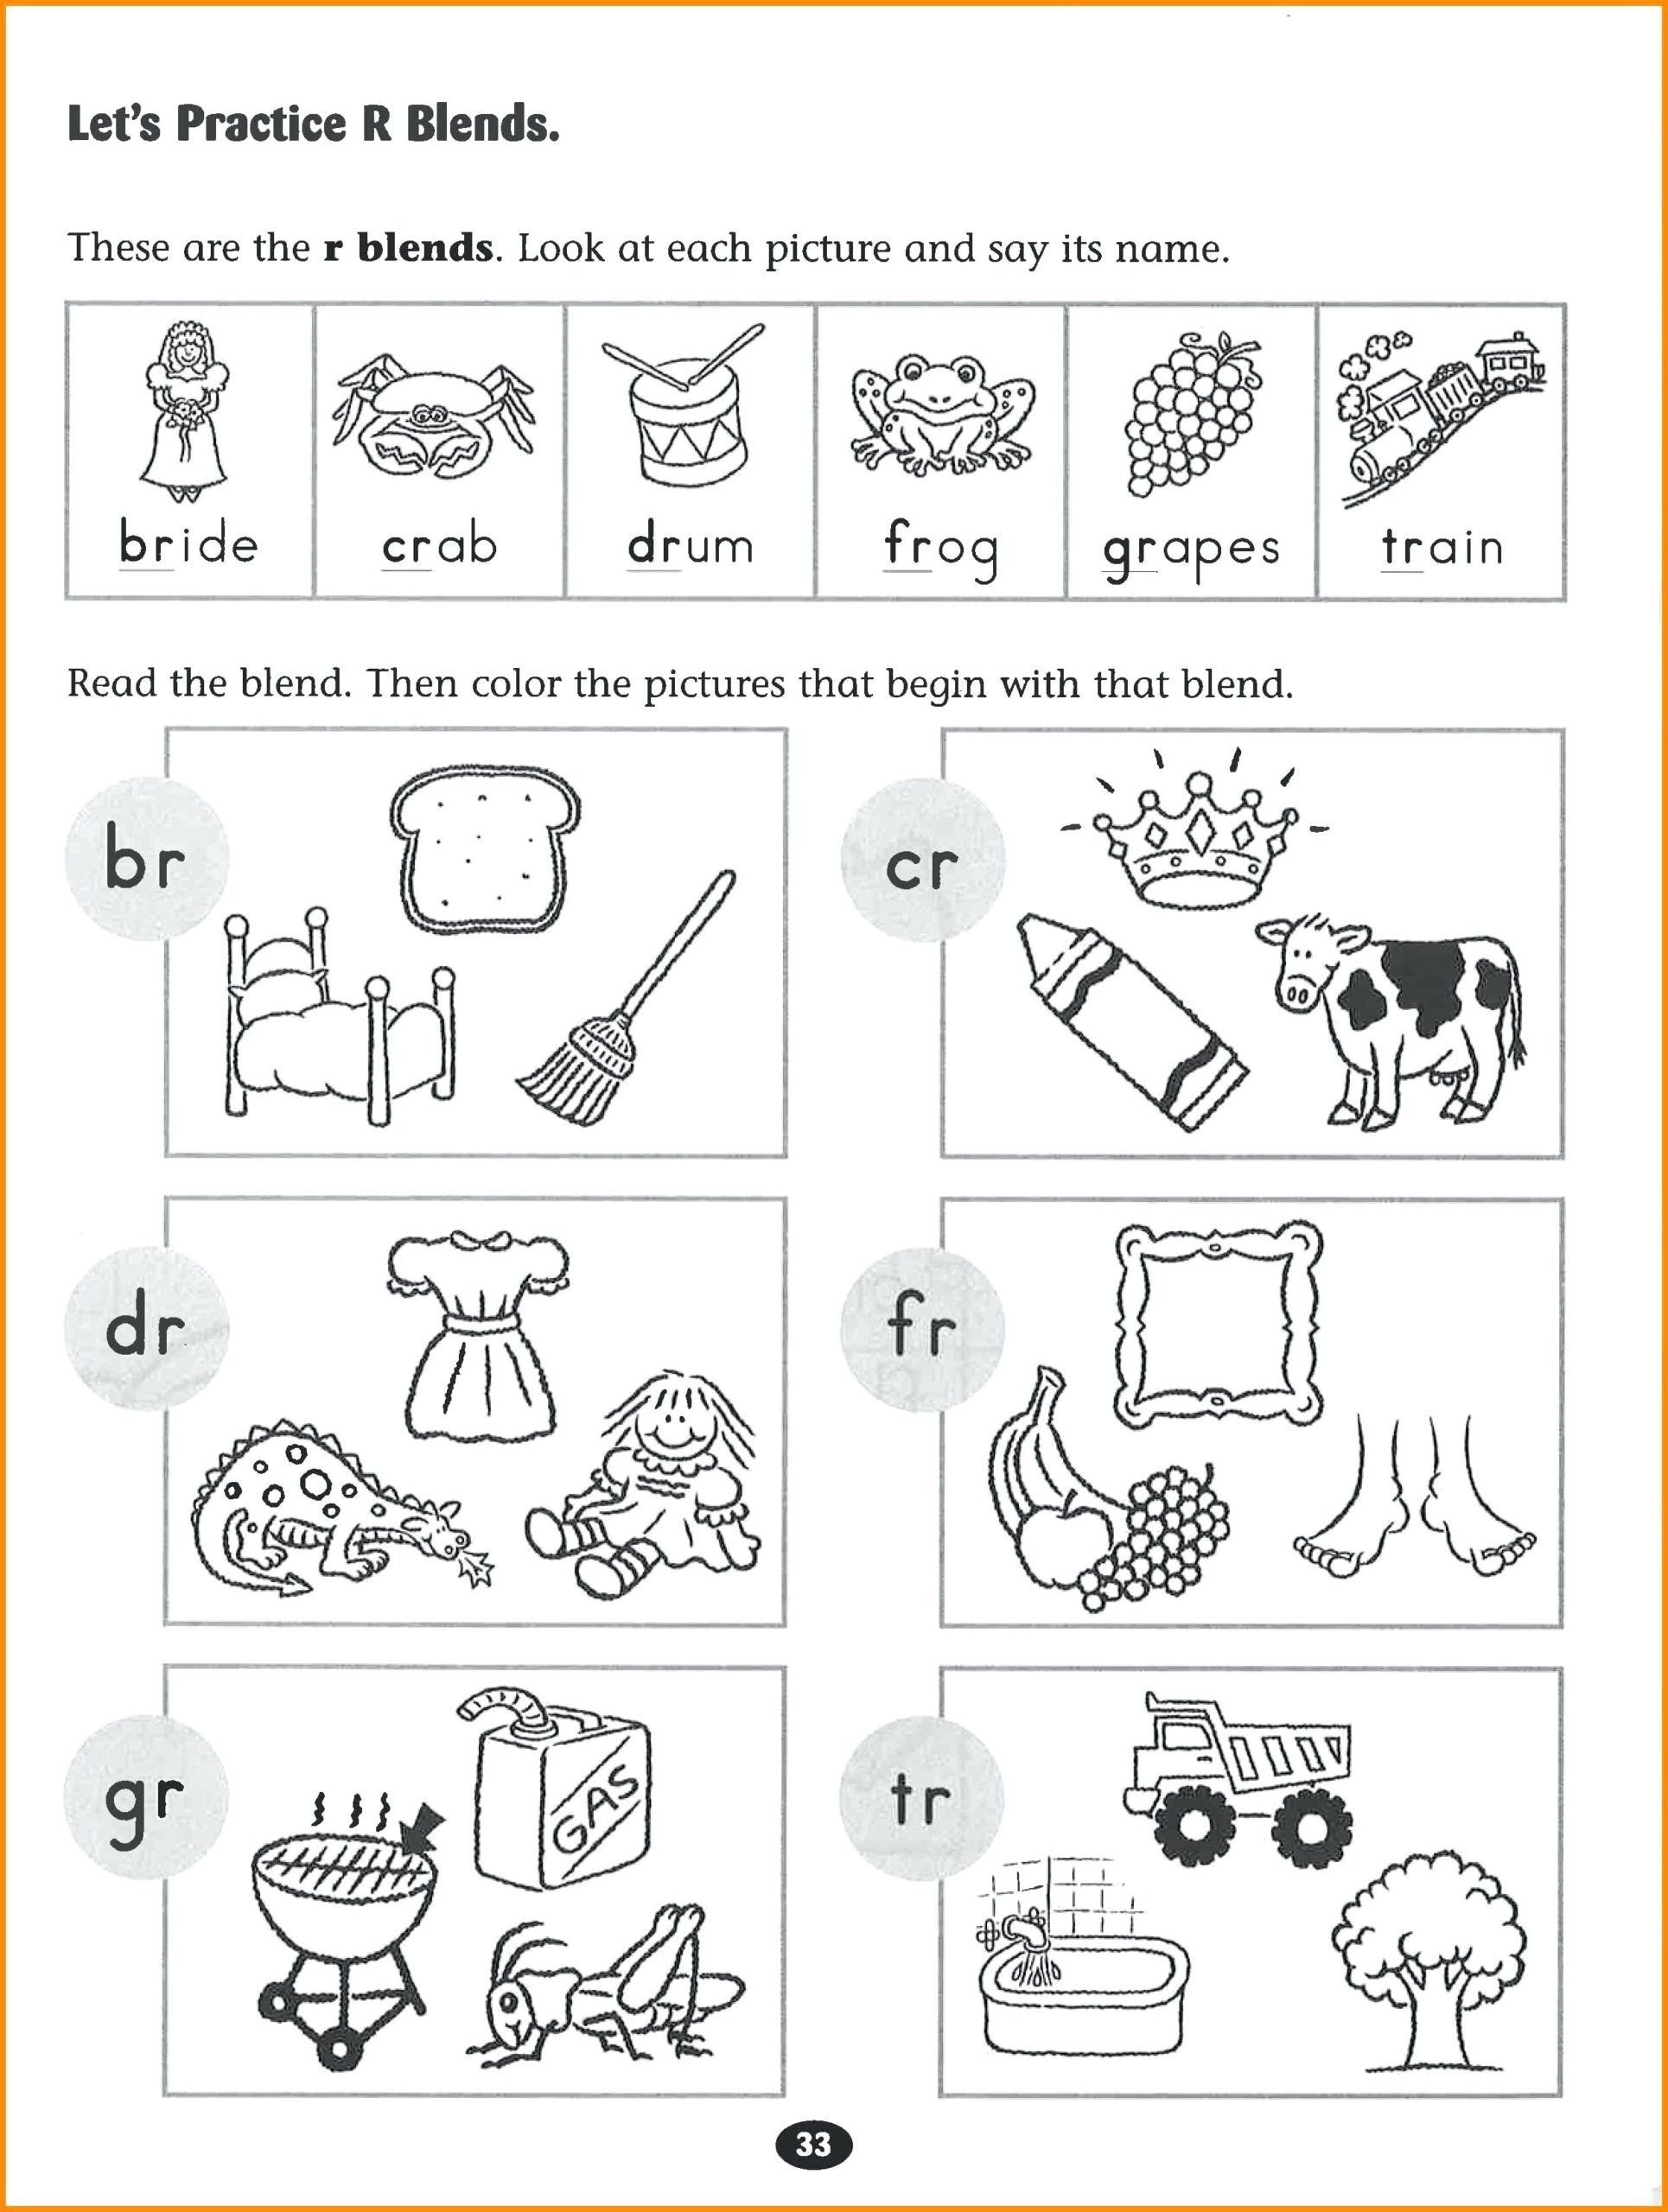 science worksheet for kindergarten math parts of the body activity sheets human pictures on matter